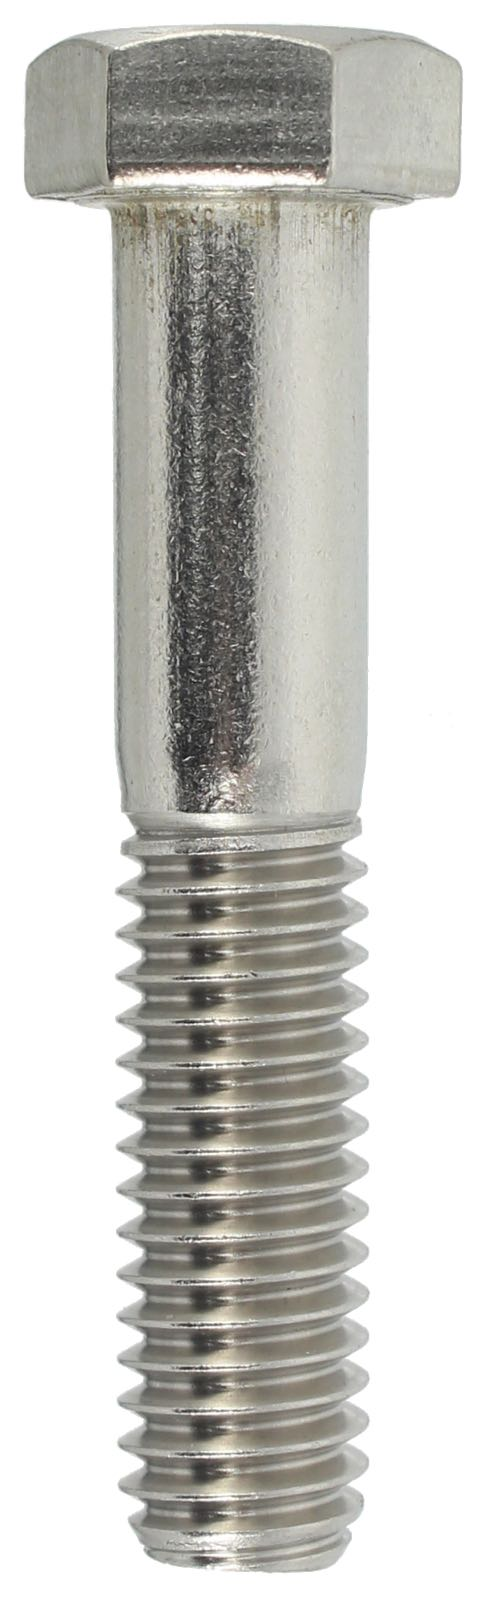 STAINLESS STEEL 3/8 X 2 UNC BOLTS (QTY 10)